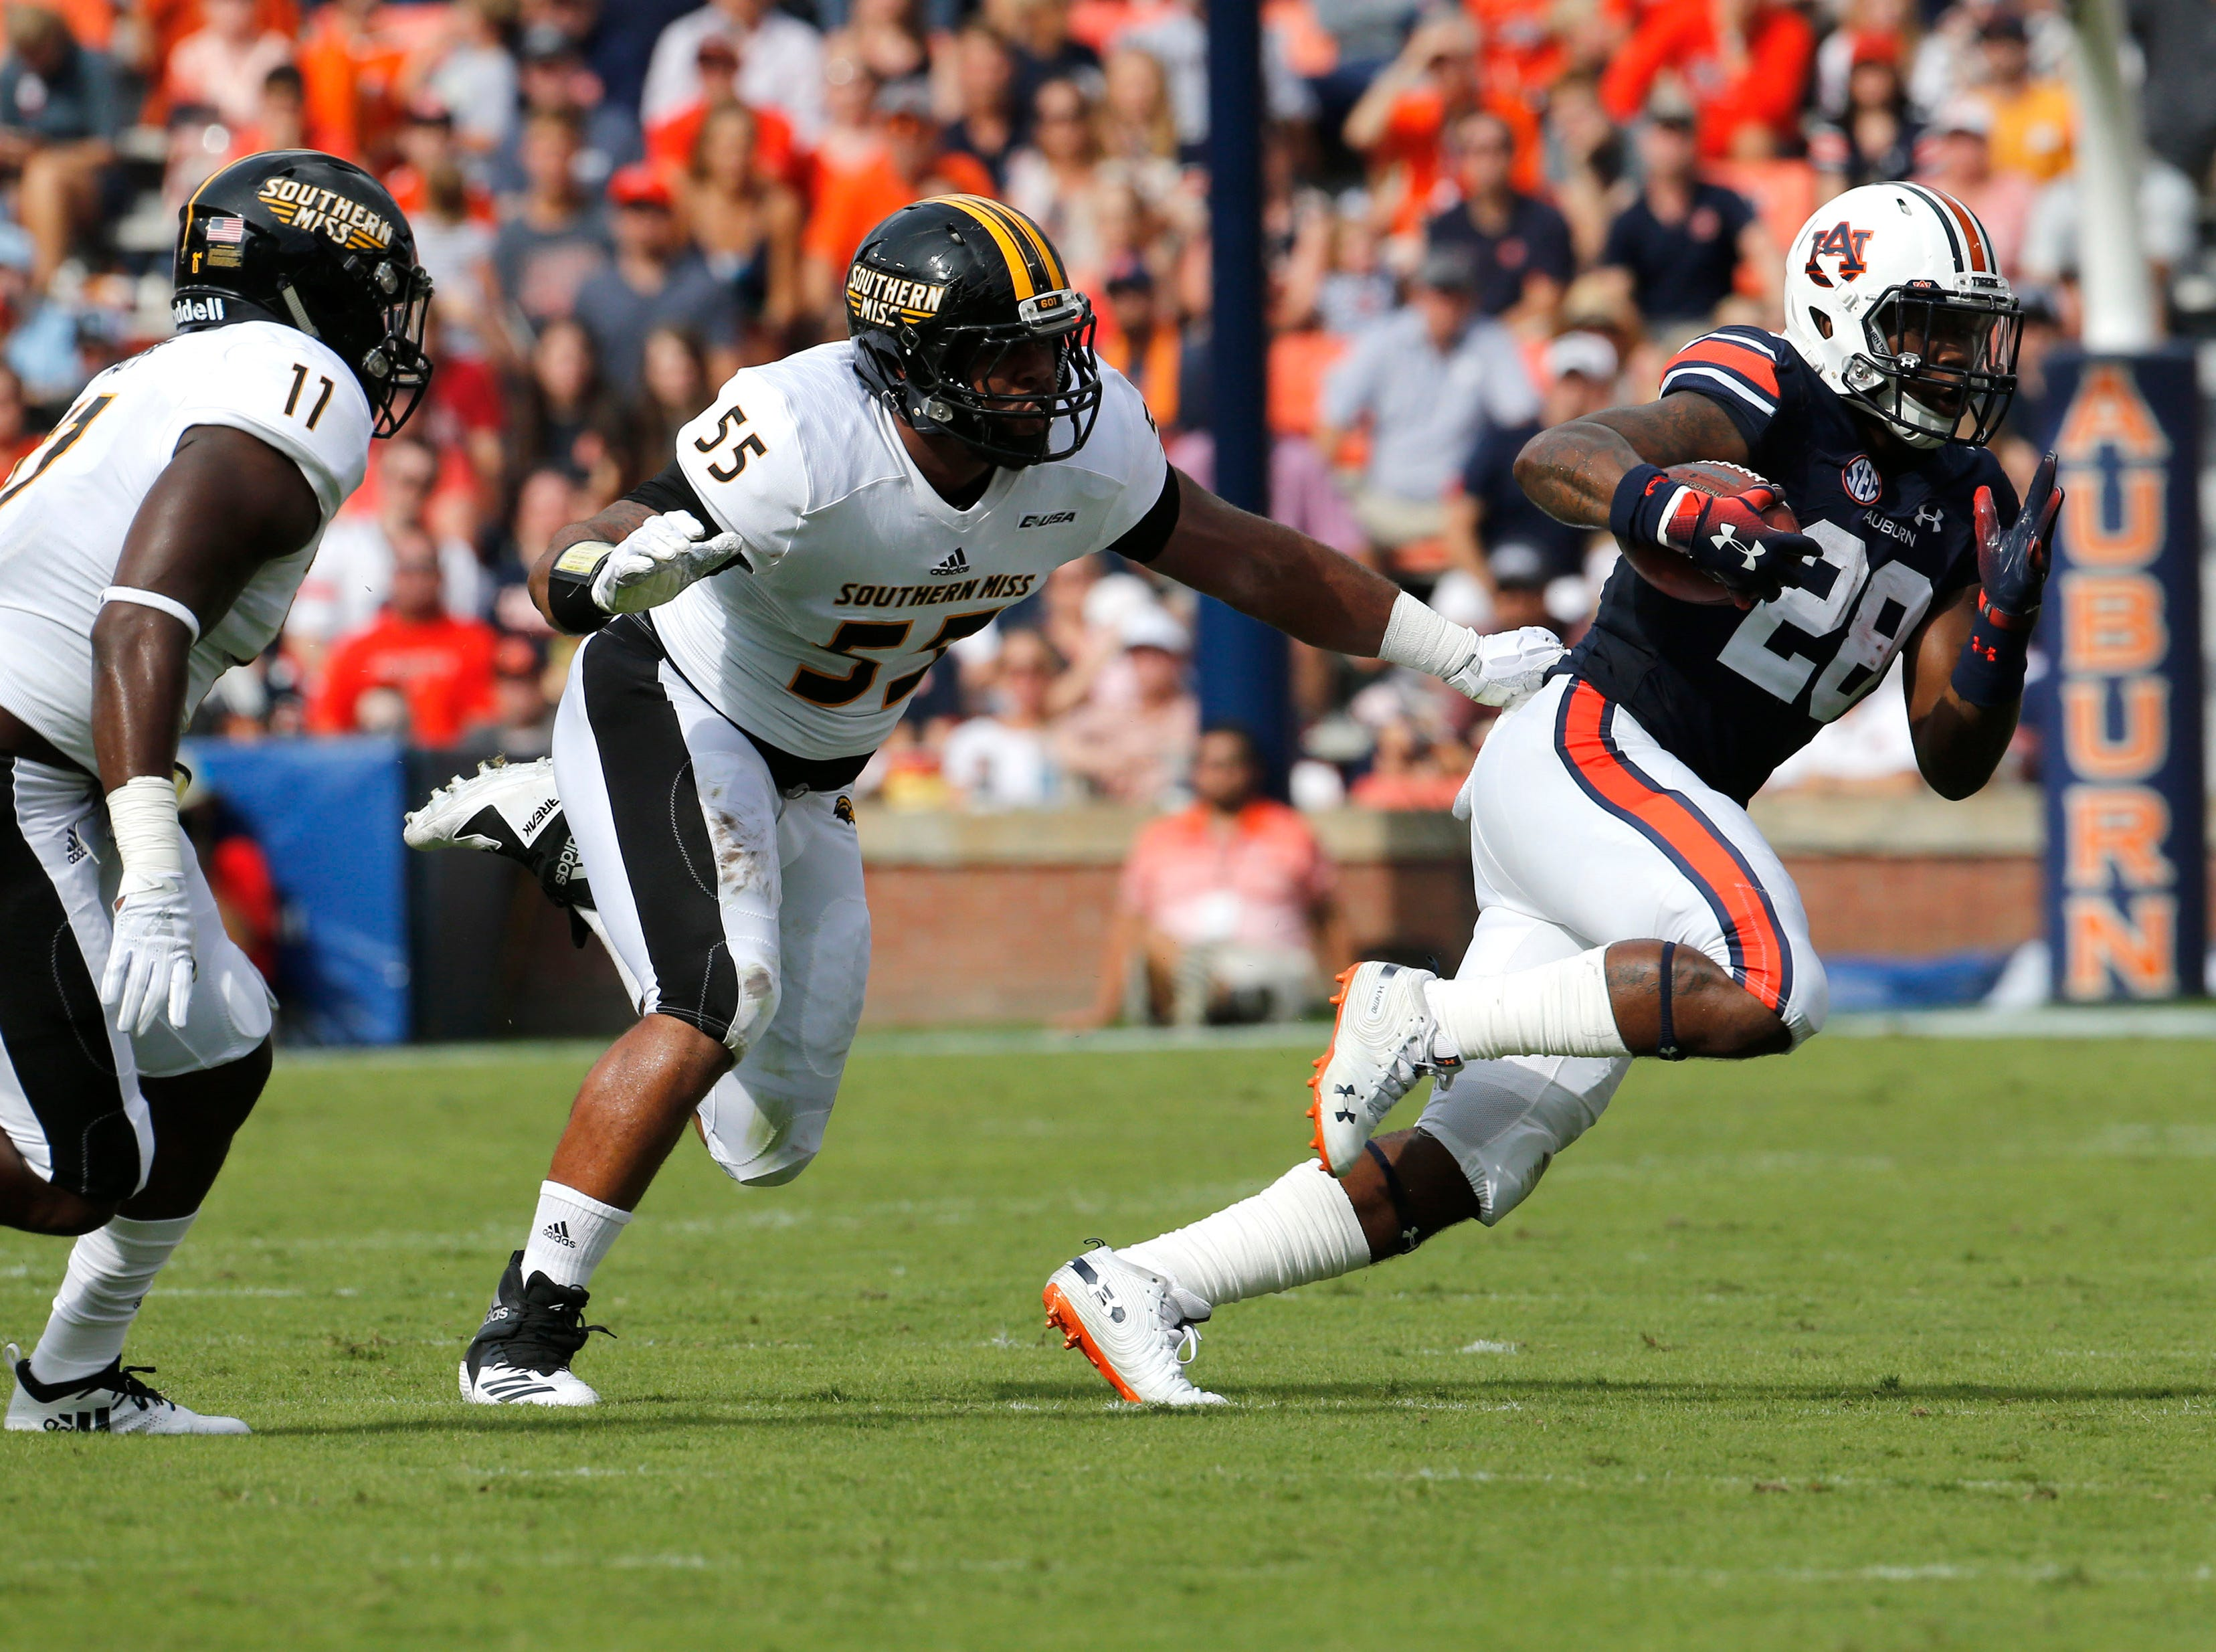 Sep 29, 2018; Auburn, AL, USA; Southern Miss Golden Eagles lineman Demarrio Smith (55) closes in on Auburn Tigers running back JaTarvious Whitlow (28) during the first quarter at Jordan-Hare Stadium. Mandatory Credit: John Reed-USA TODAY Sports